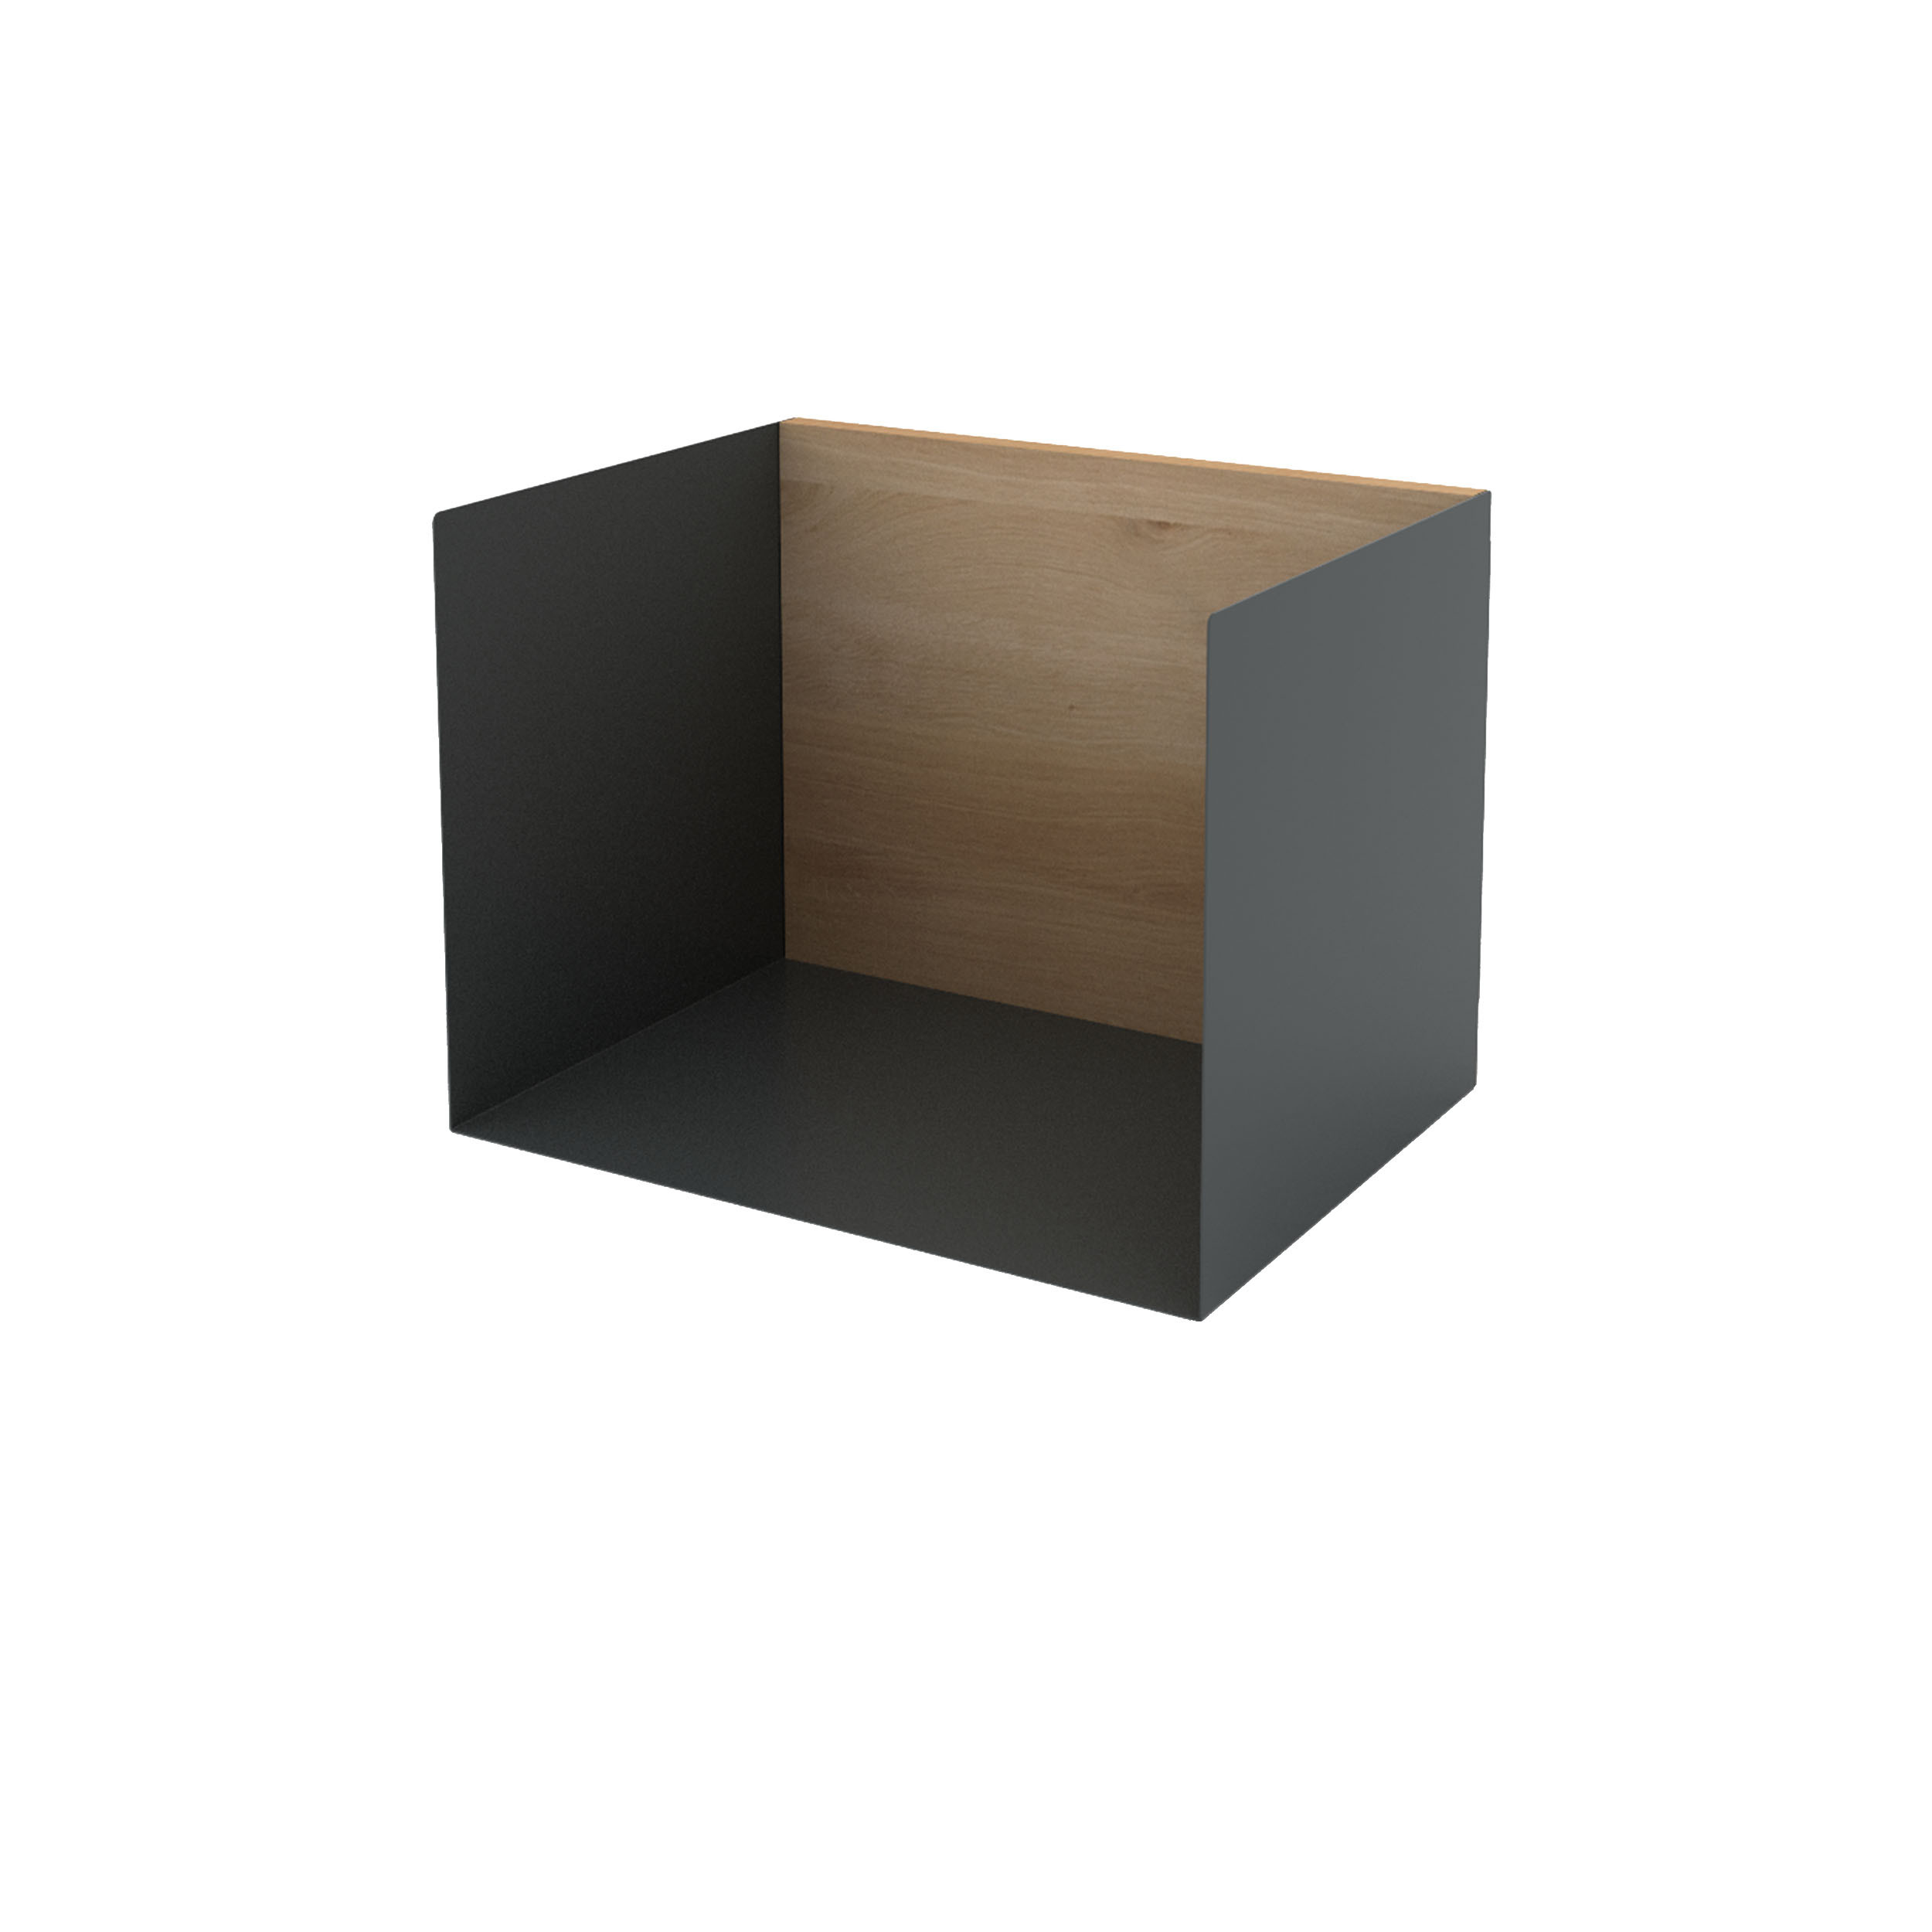 Regal Shelfy U Shelf Regal A046488 003 Online Kaufen Bei Woonio